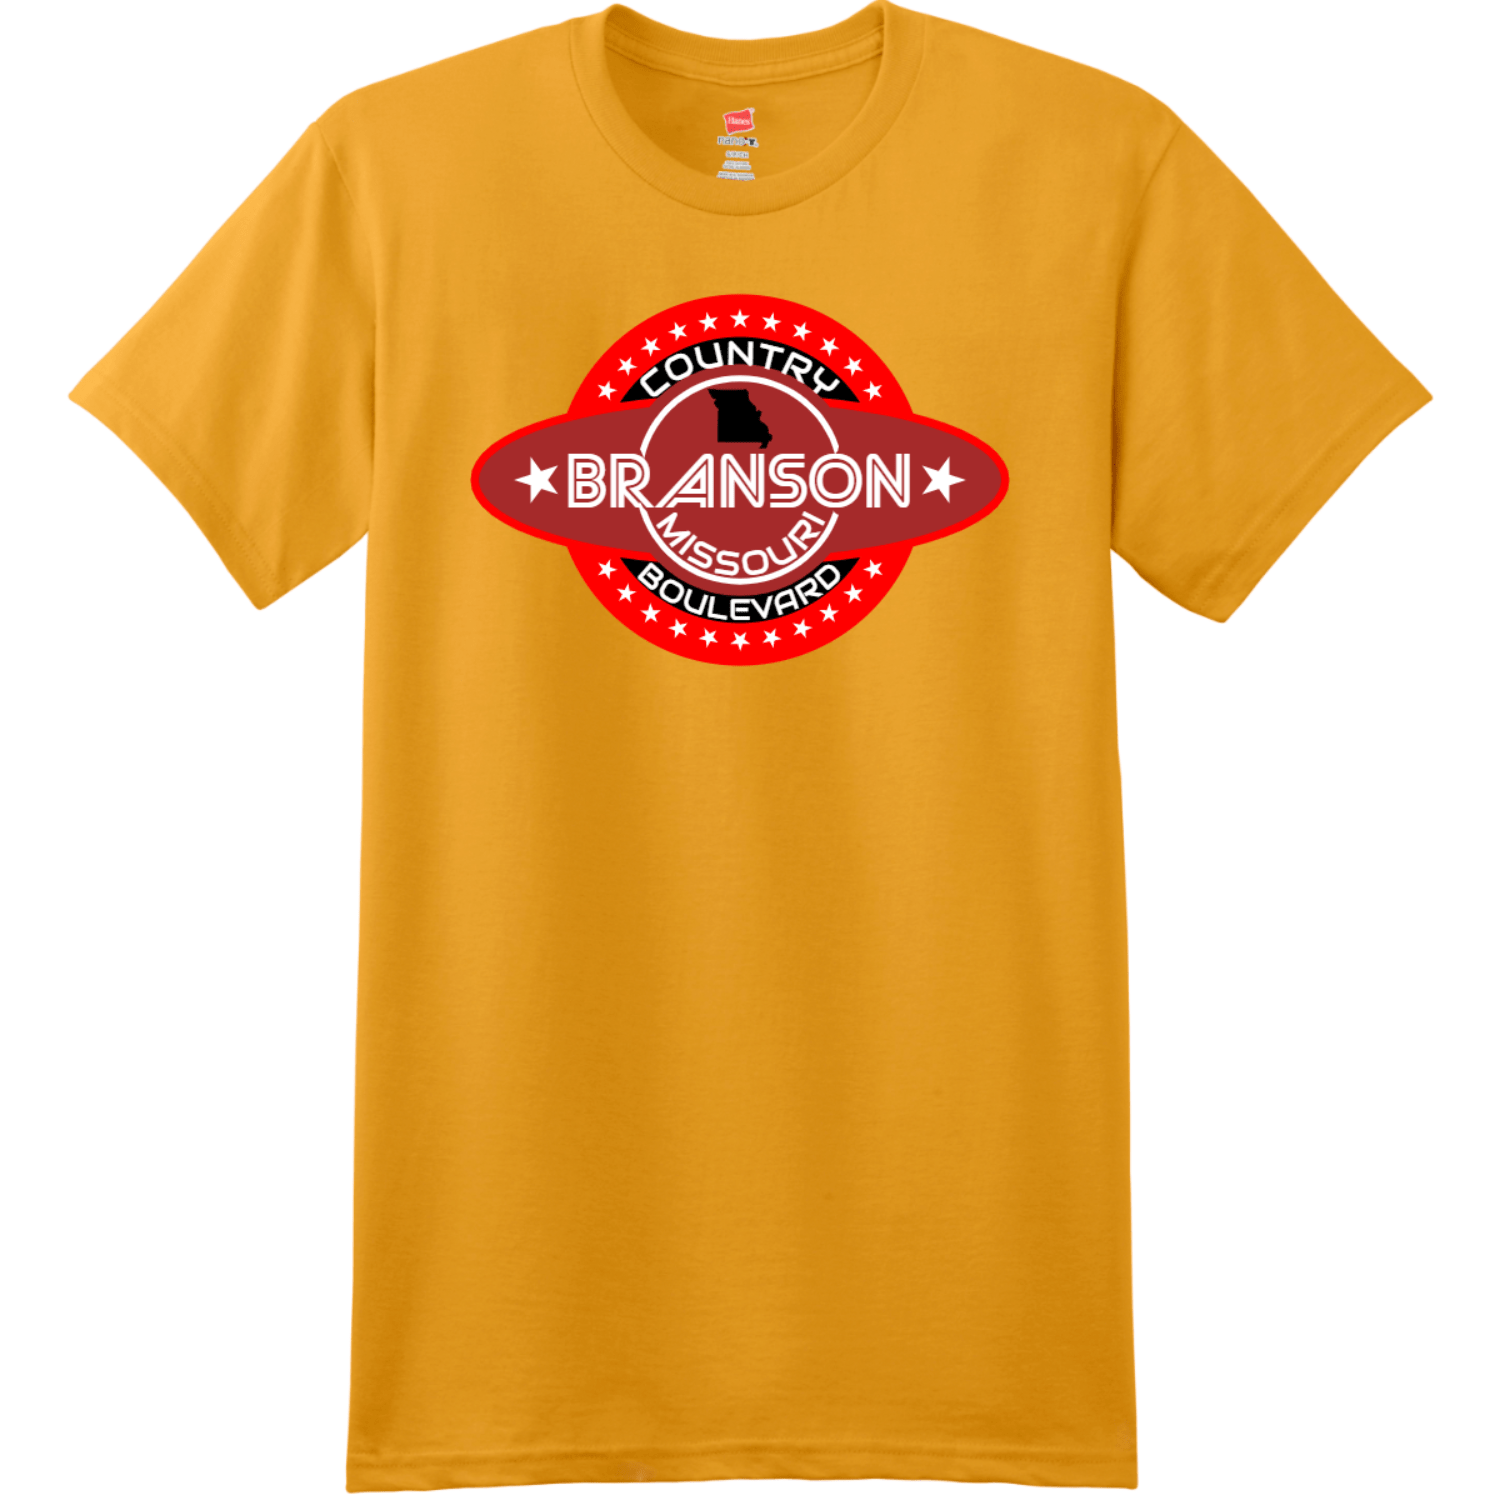 Branson Missouri Country Boulevard T Shirt Gold Hanes Nano 4980 Ringspun Cotton T Shirt